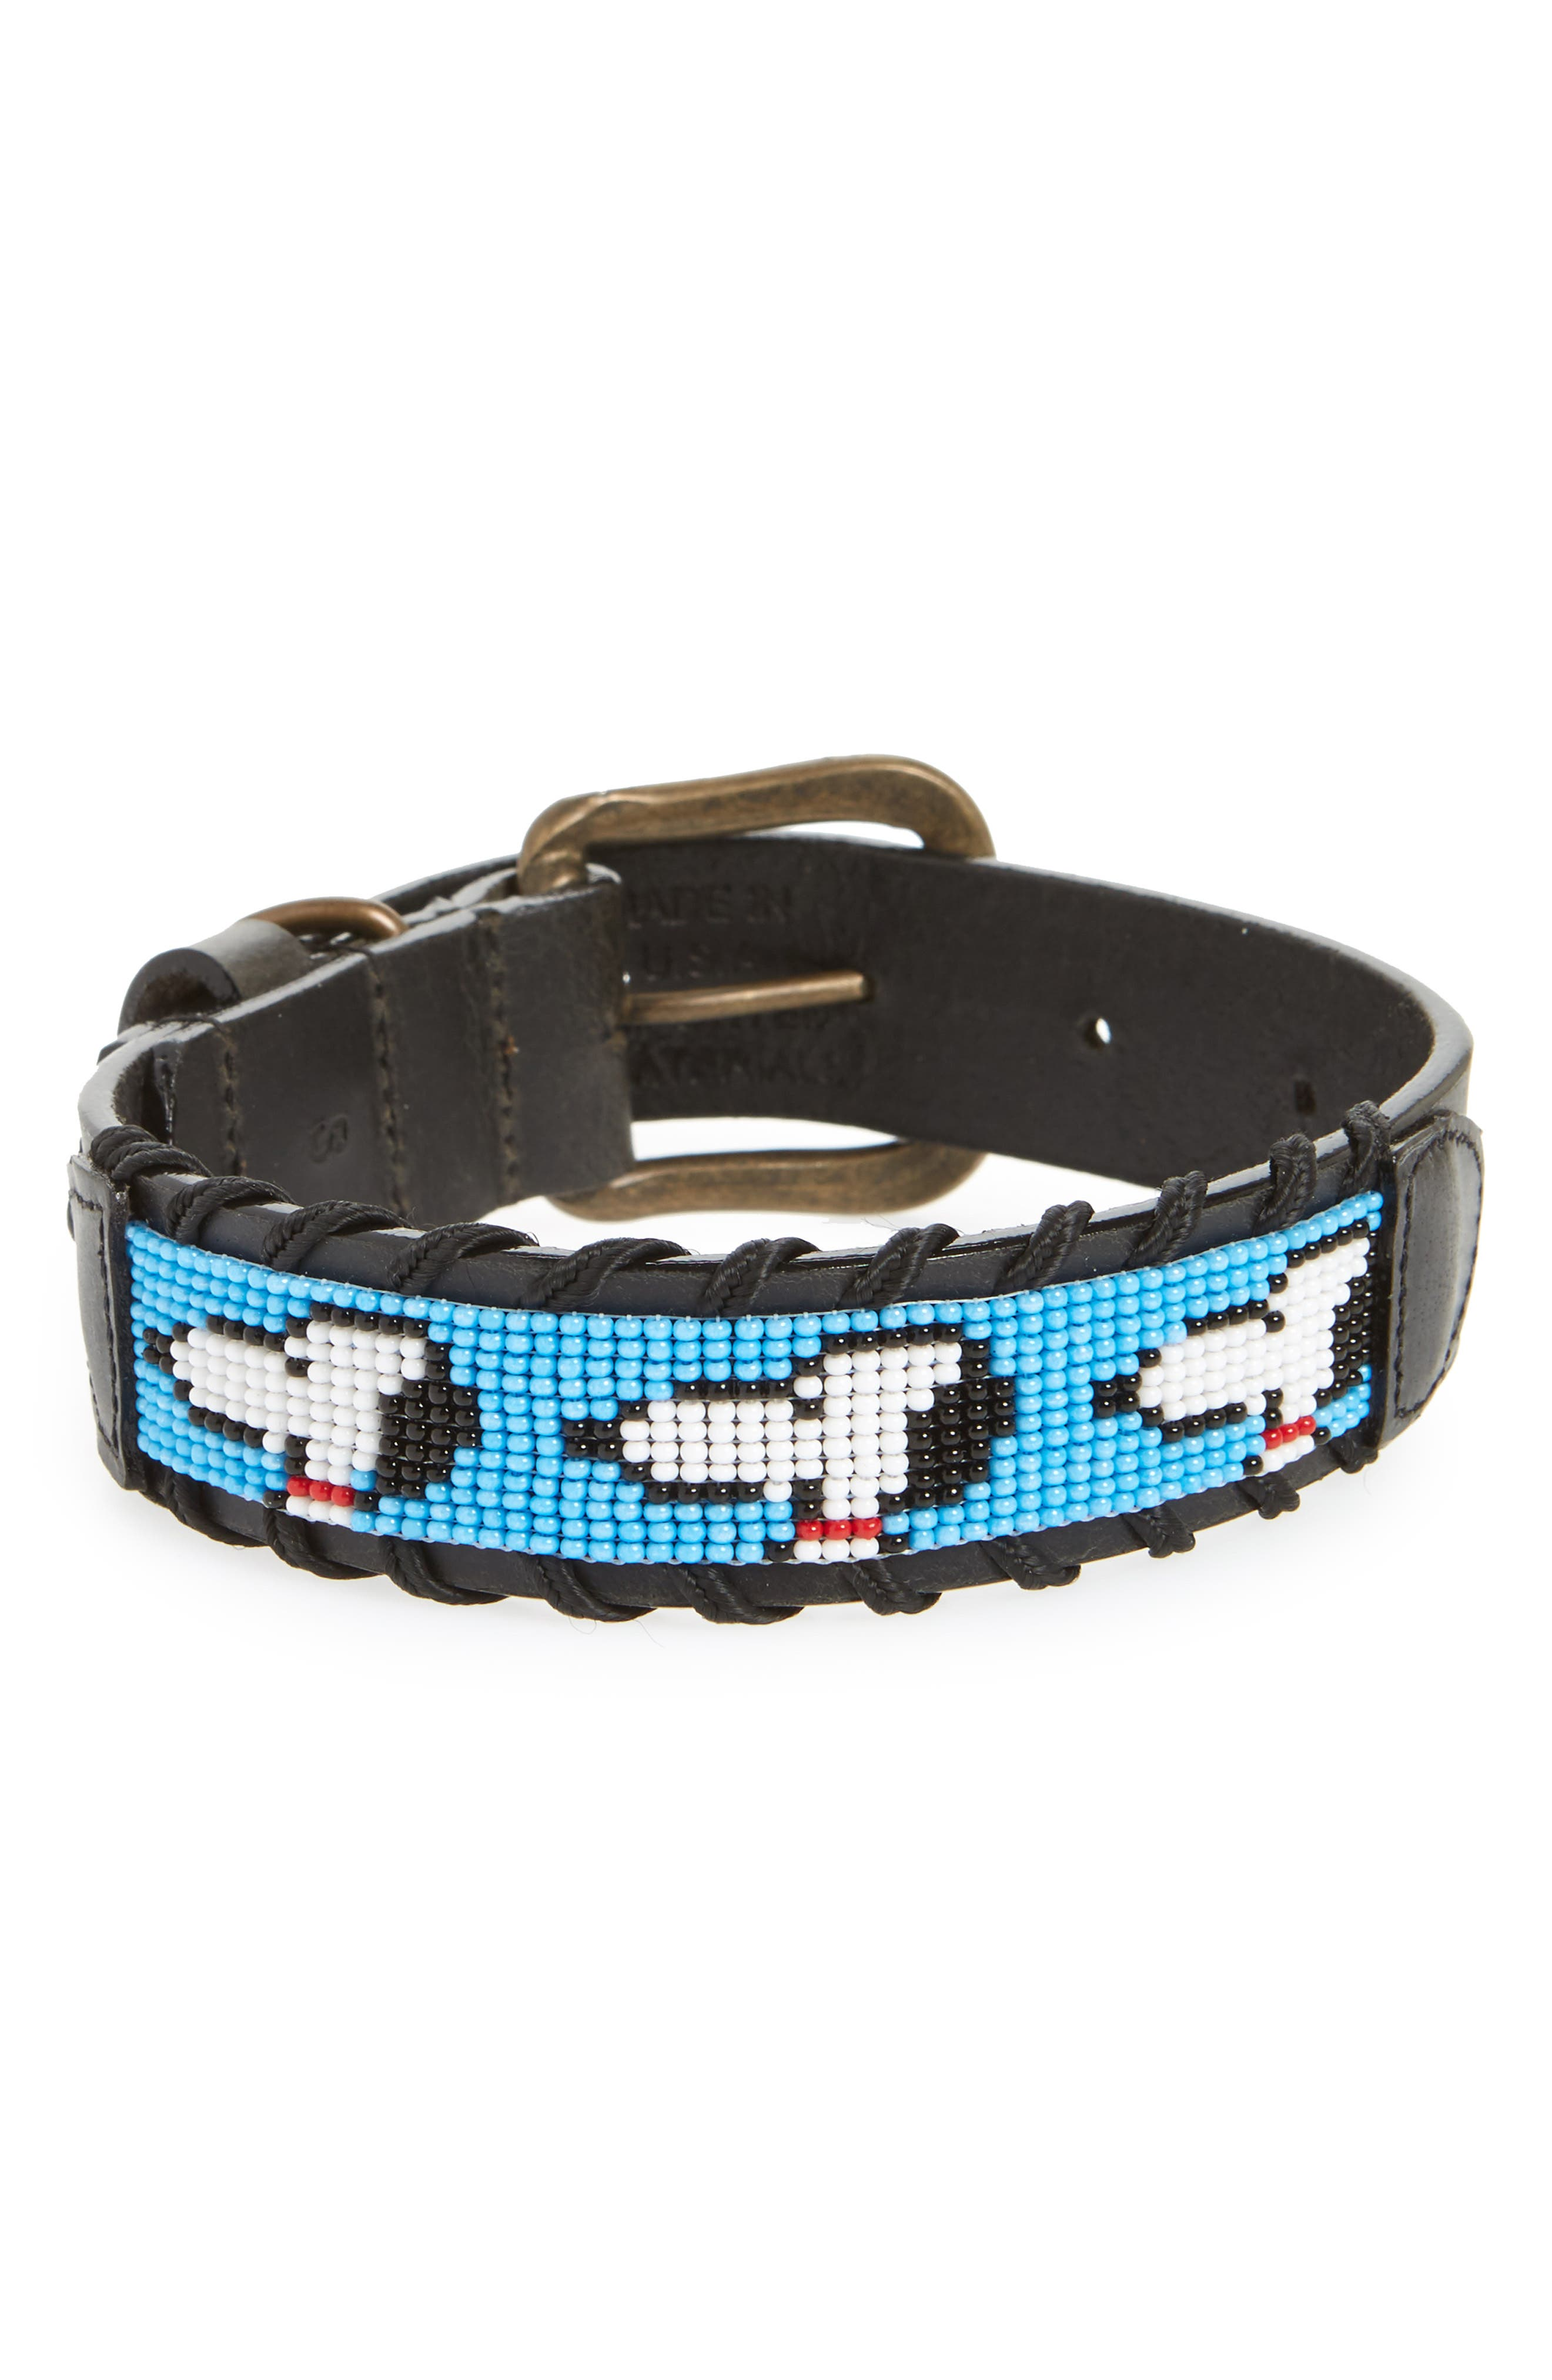 Peanuts - Snoopy Silhouette Beaded Dog Collar,                         Main,                         color,